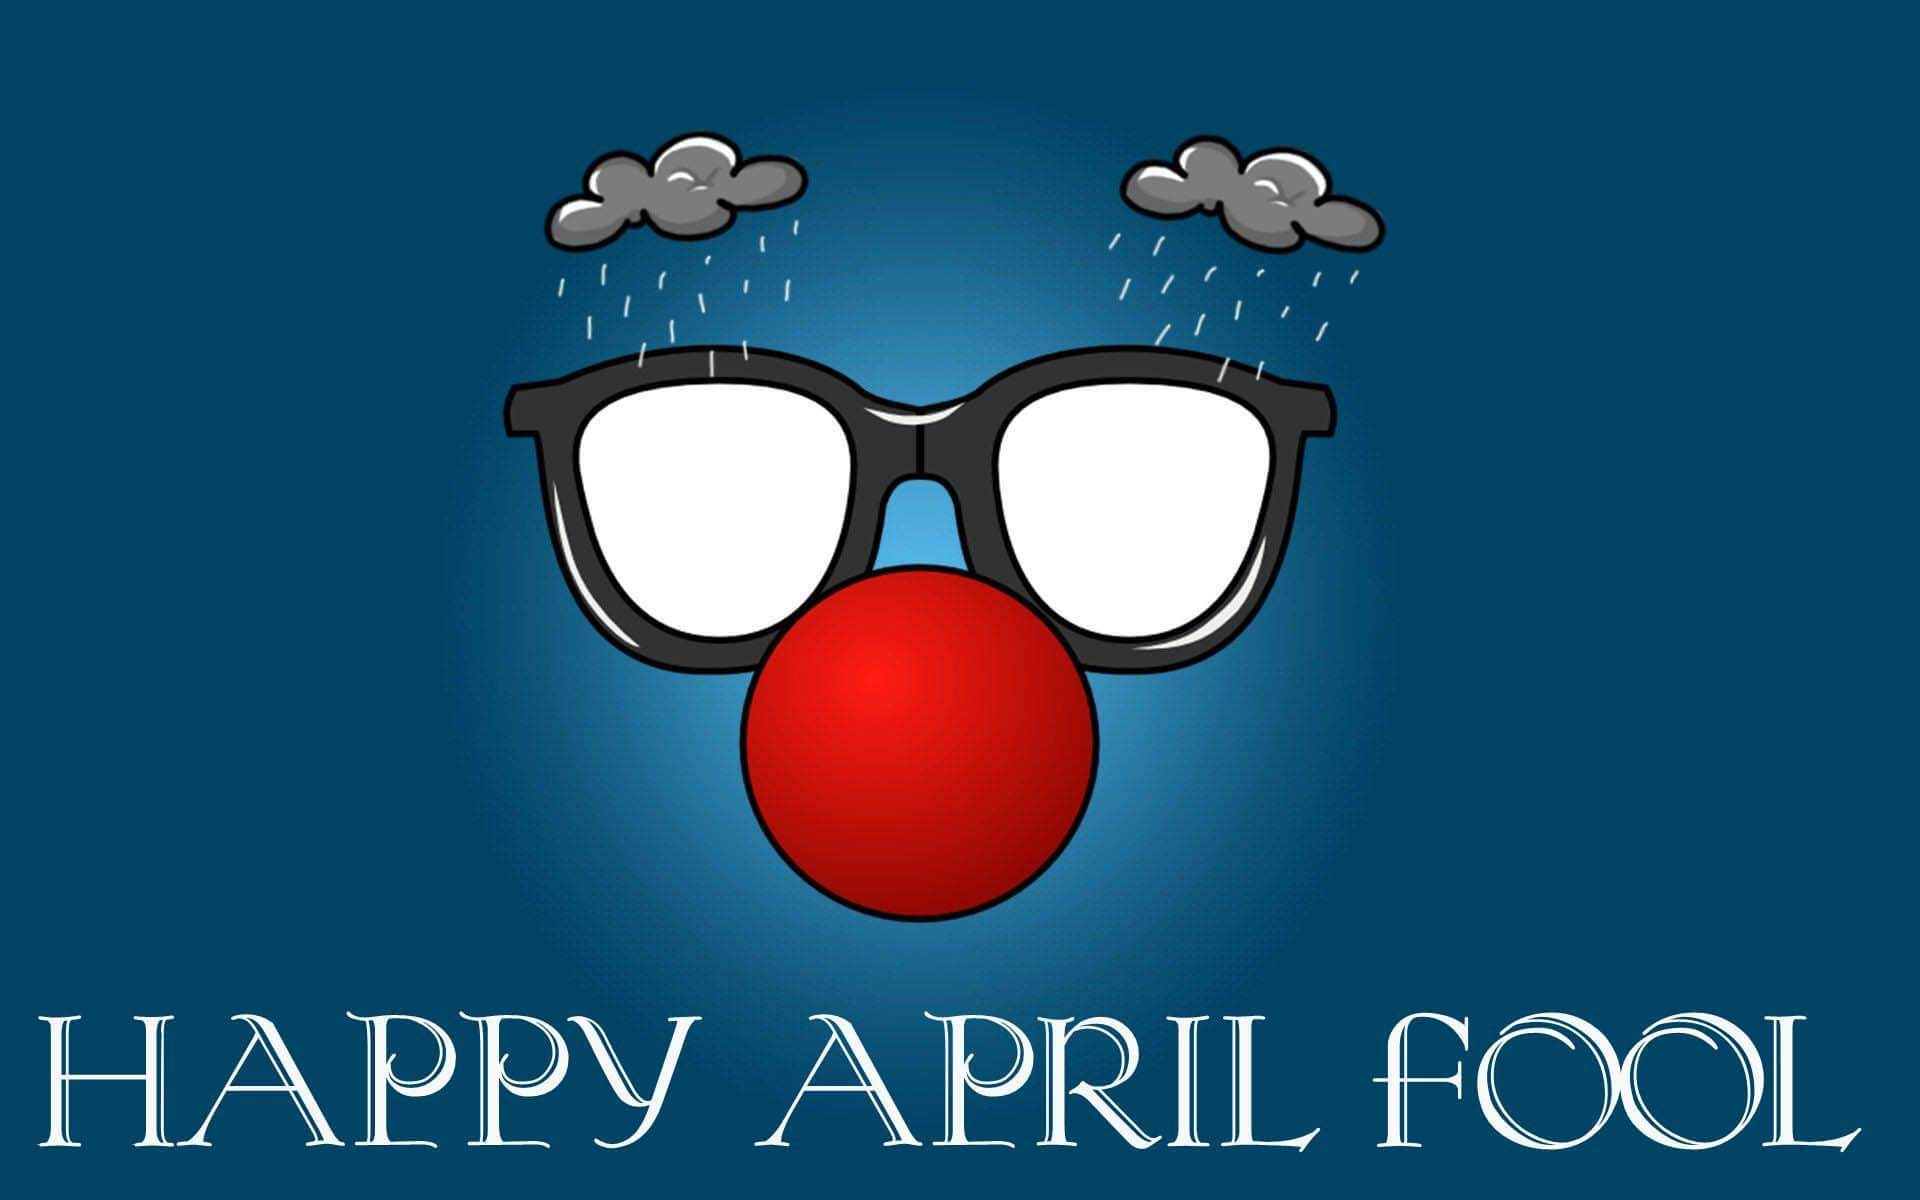 april fools day joker wishes greetings image background hd wallpaper